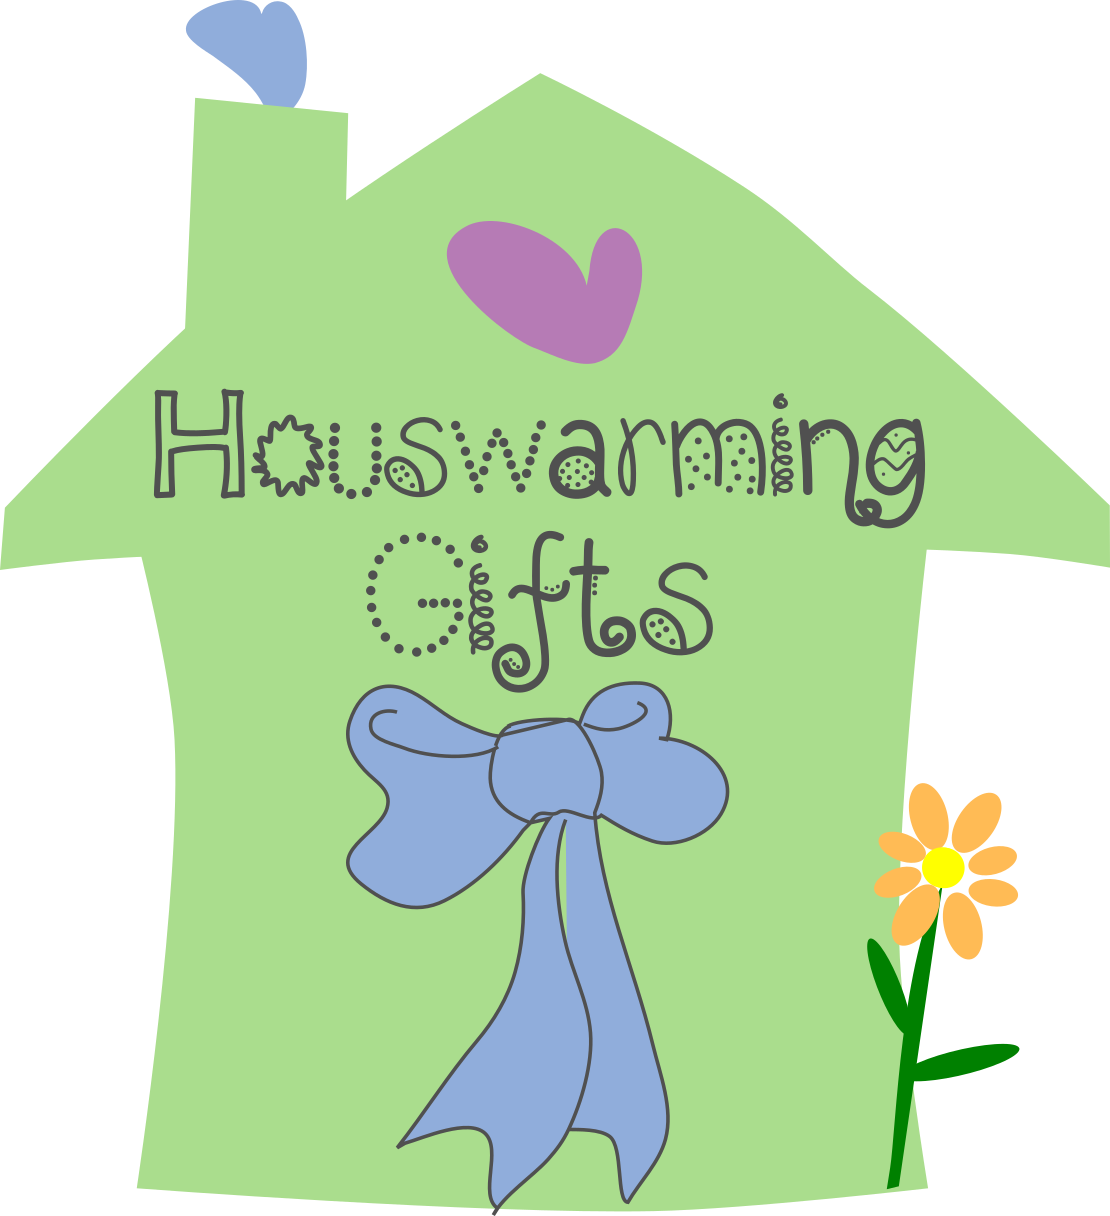 Clipart house warming clipart library 9 Housewarming Gifts That Won't Be Re-Gifted clipart library